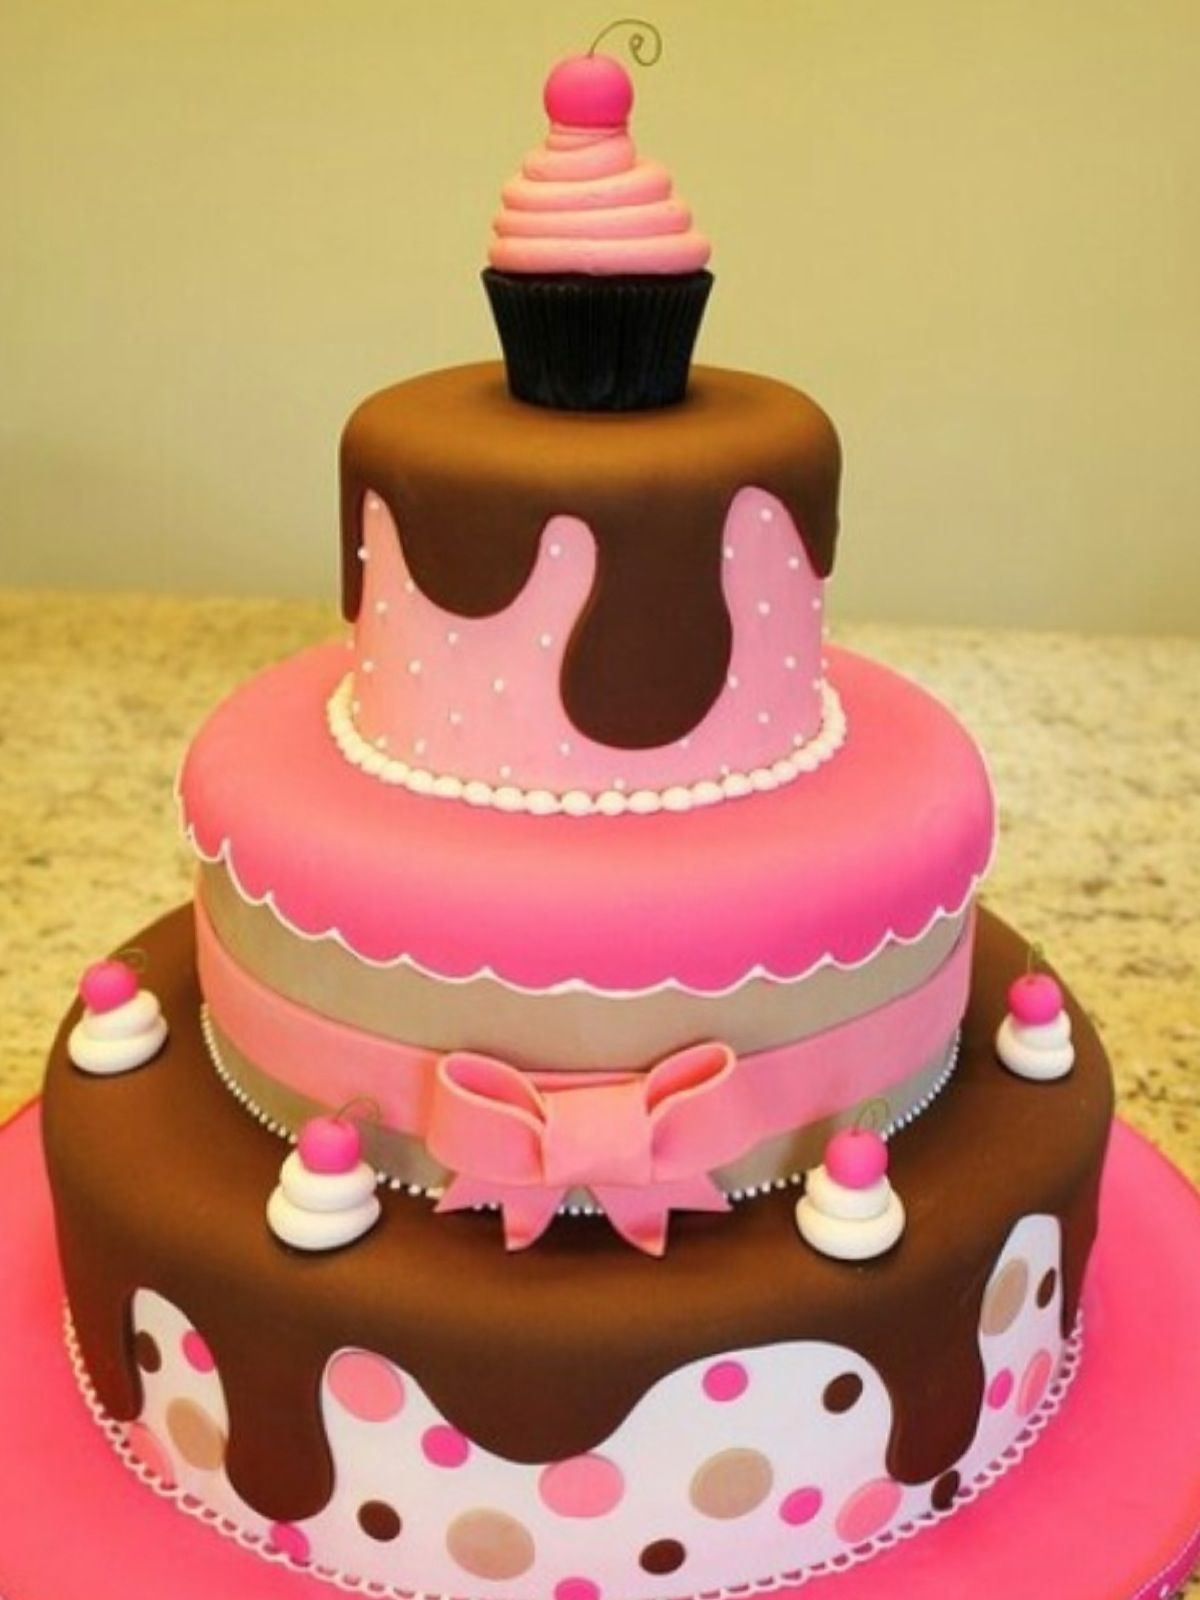 This cake was for my cousin!  She's turning 2 very soon!